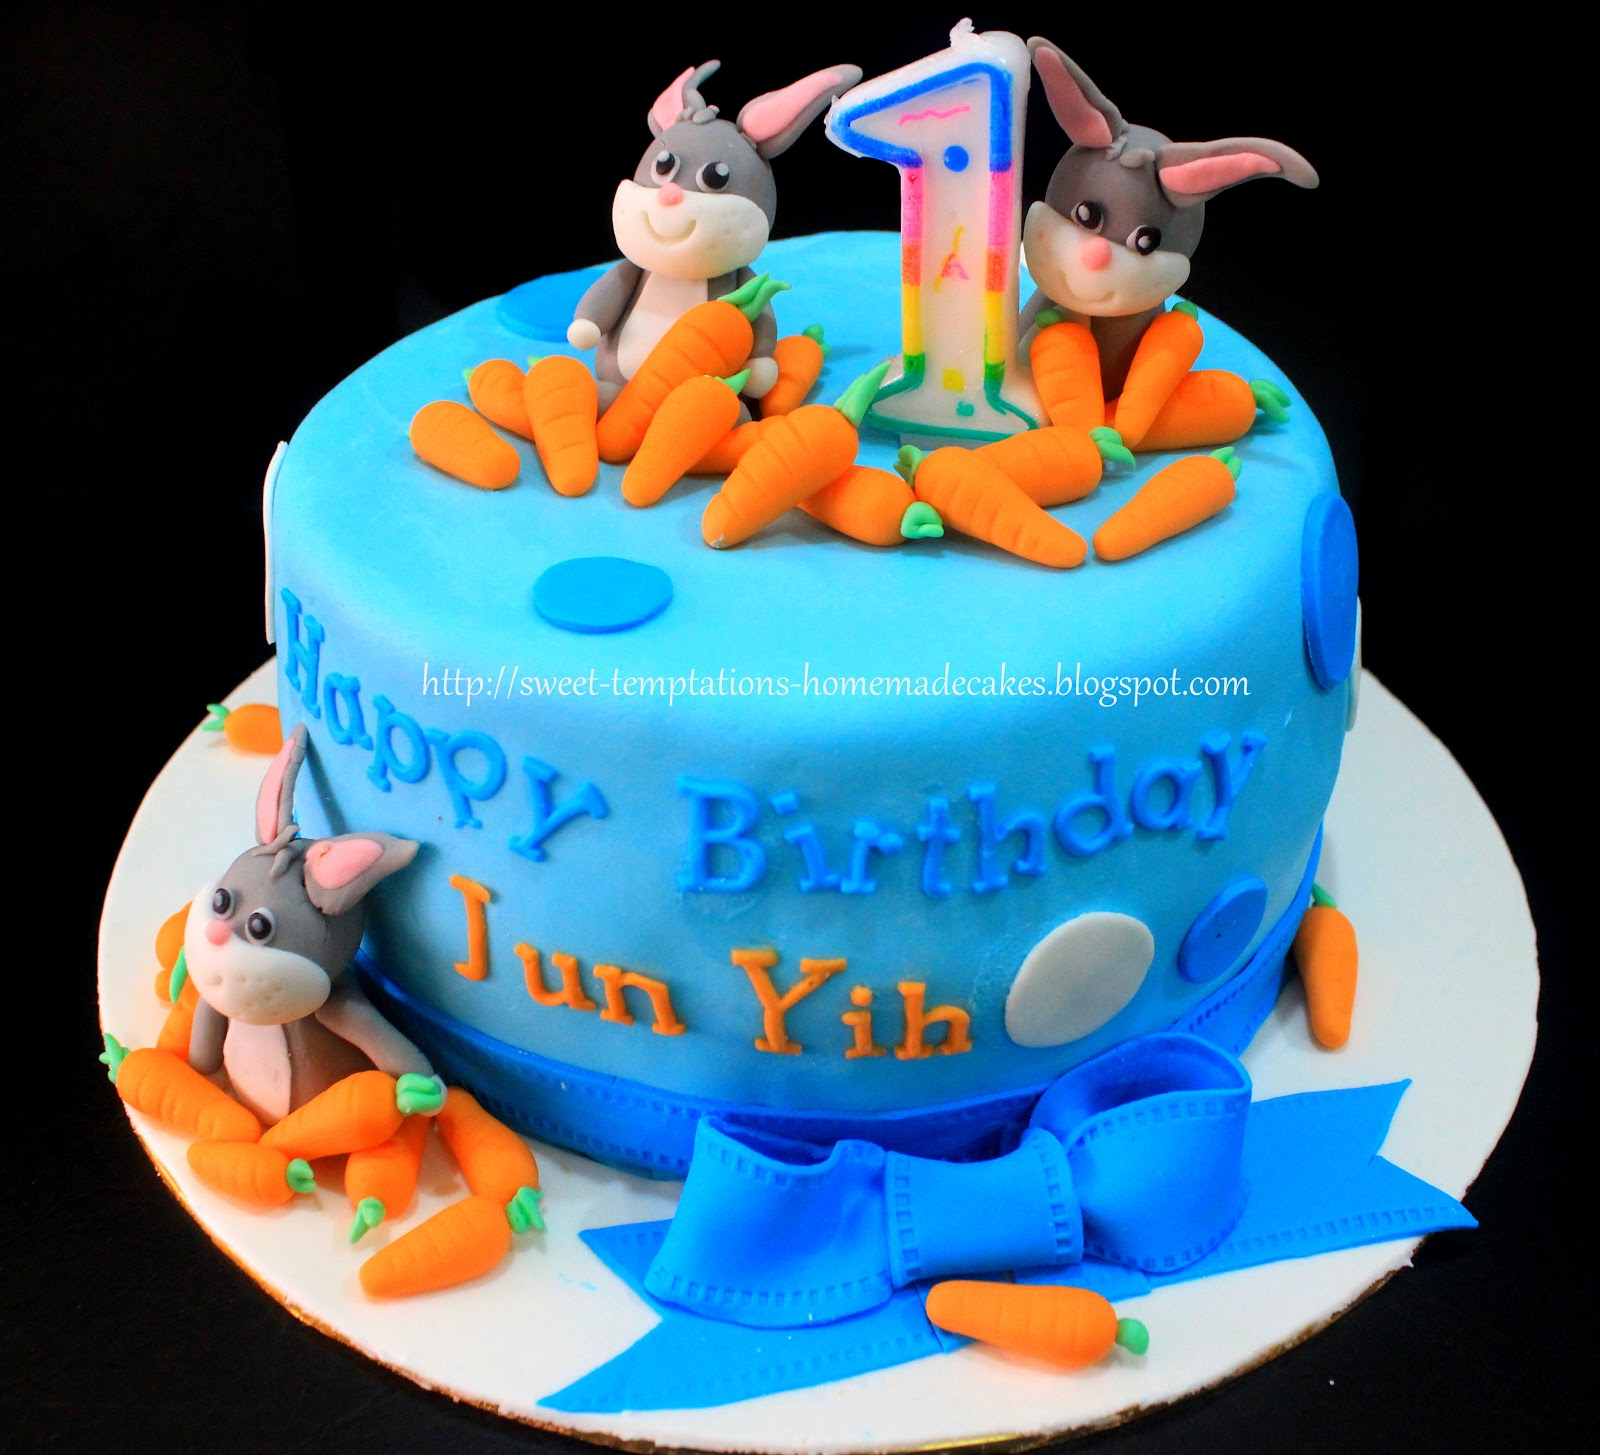 Sweet Temptations Homemade Cakes & Pastry: Bunny Cake for ...